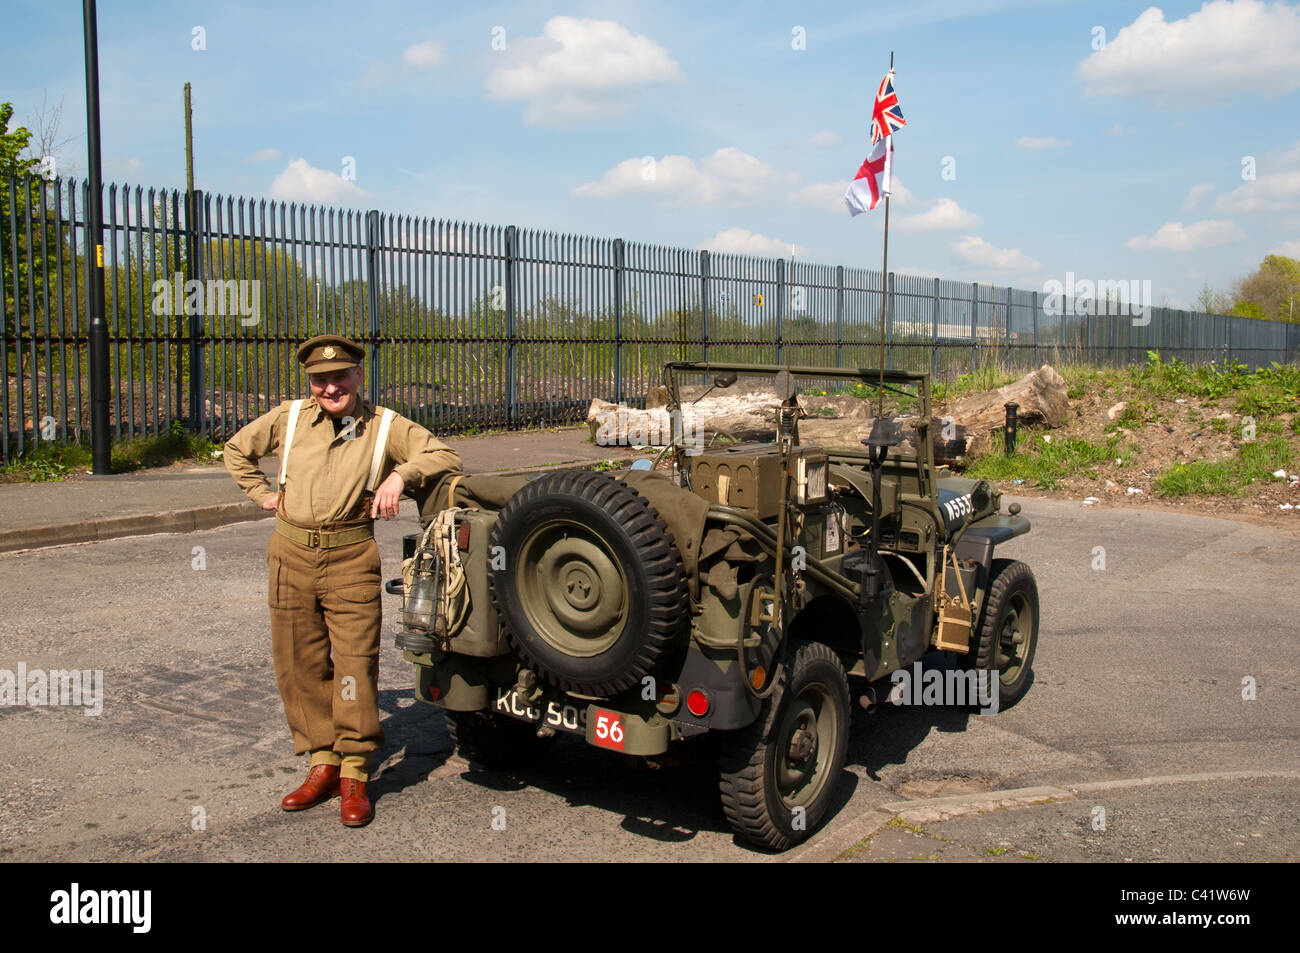 hight resolution of ford willys mb us army jeep c1941 5 at a ww2 parade miles platting manchester england uk